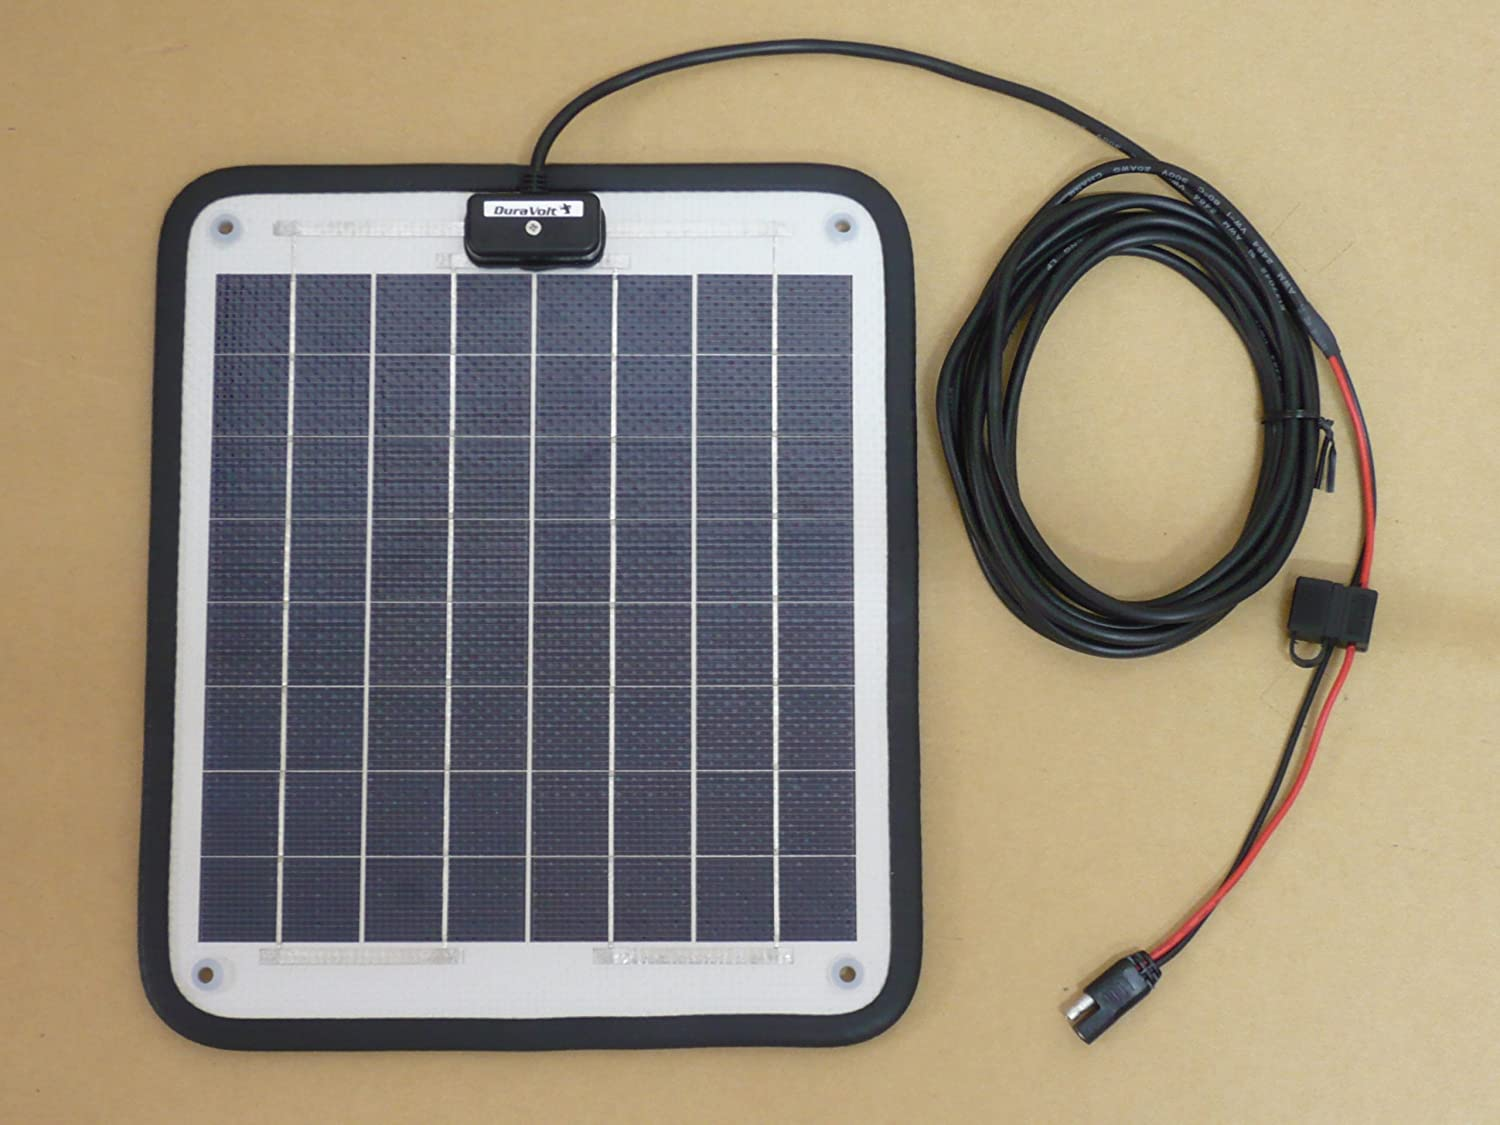 Marine solar panel installations first mate marine inc - Amazon Com Solar Battery Charger 16 6 Watt 1 Amp Boat Rv Marine Trolling Motor Solar Panel 12 Volt No Experience Plug Play Design